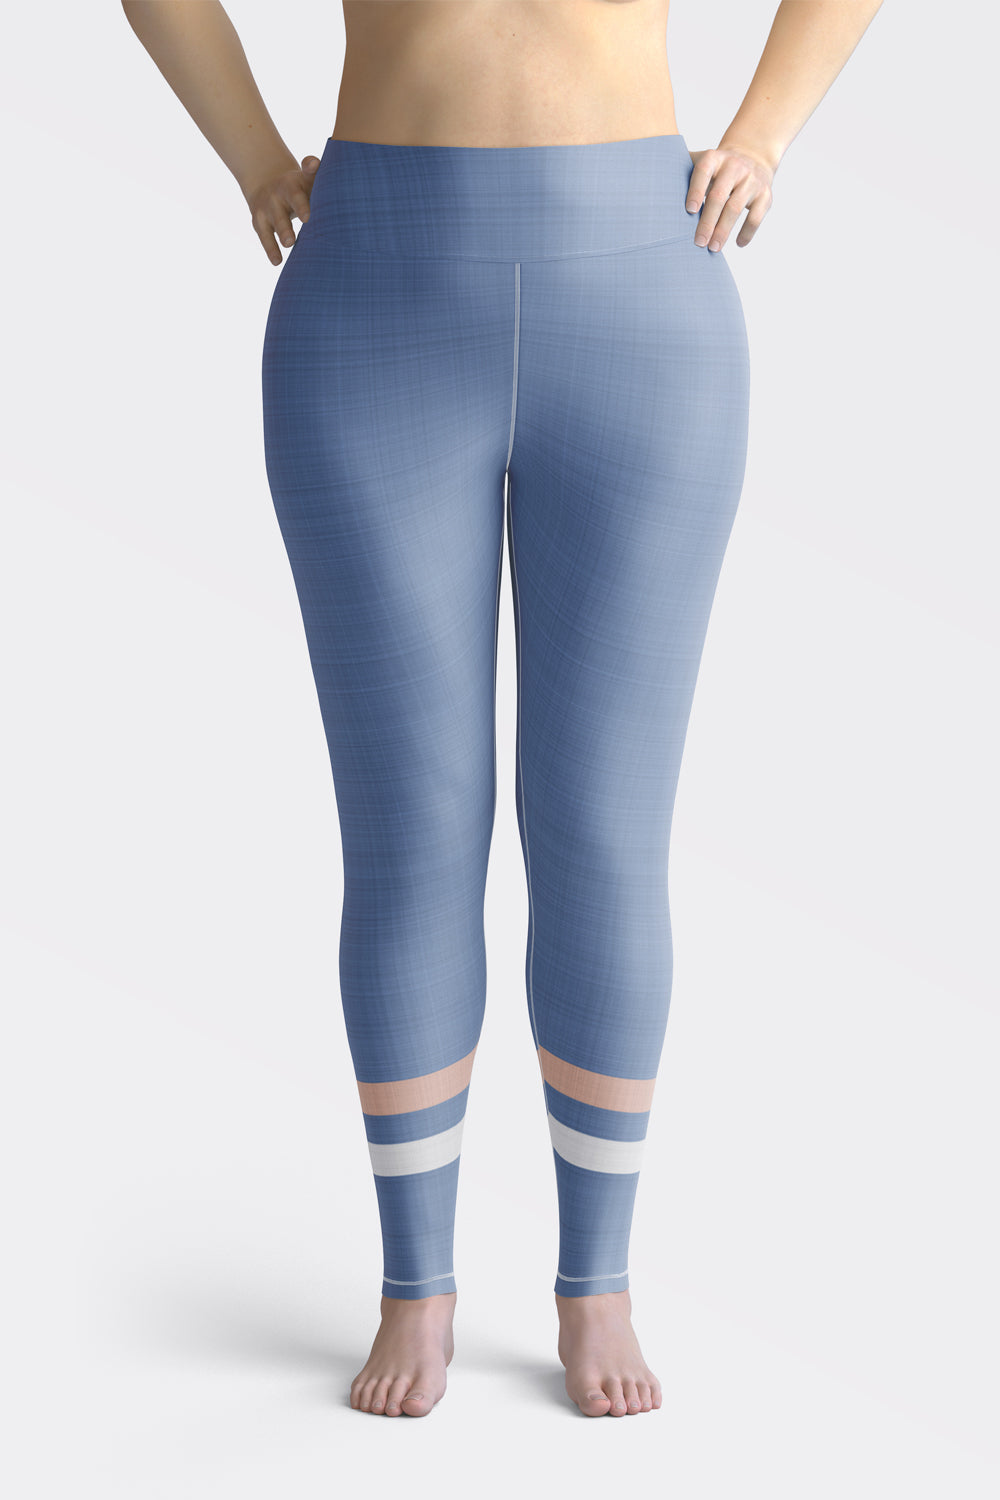 light-blue-cream-ivory-sporty-stripes-elegant-women-plus-size-leggings-chic